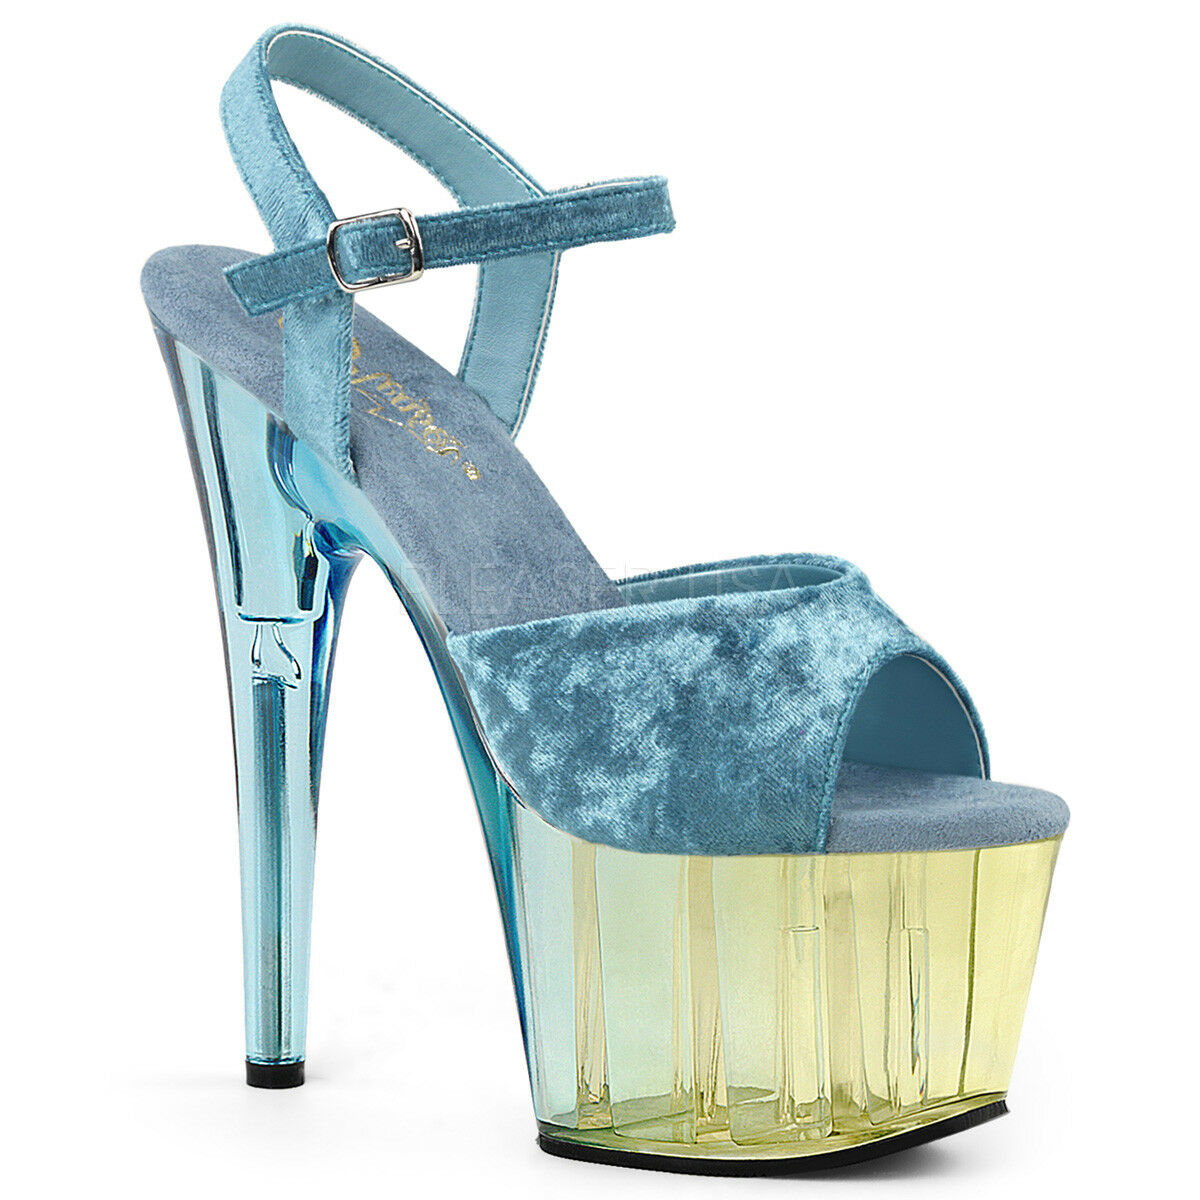 7  Clear bleu Velvet Stripper chaussures Platforms Pleaser Adore Pole Dancer Heels